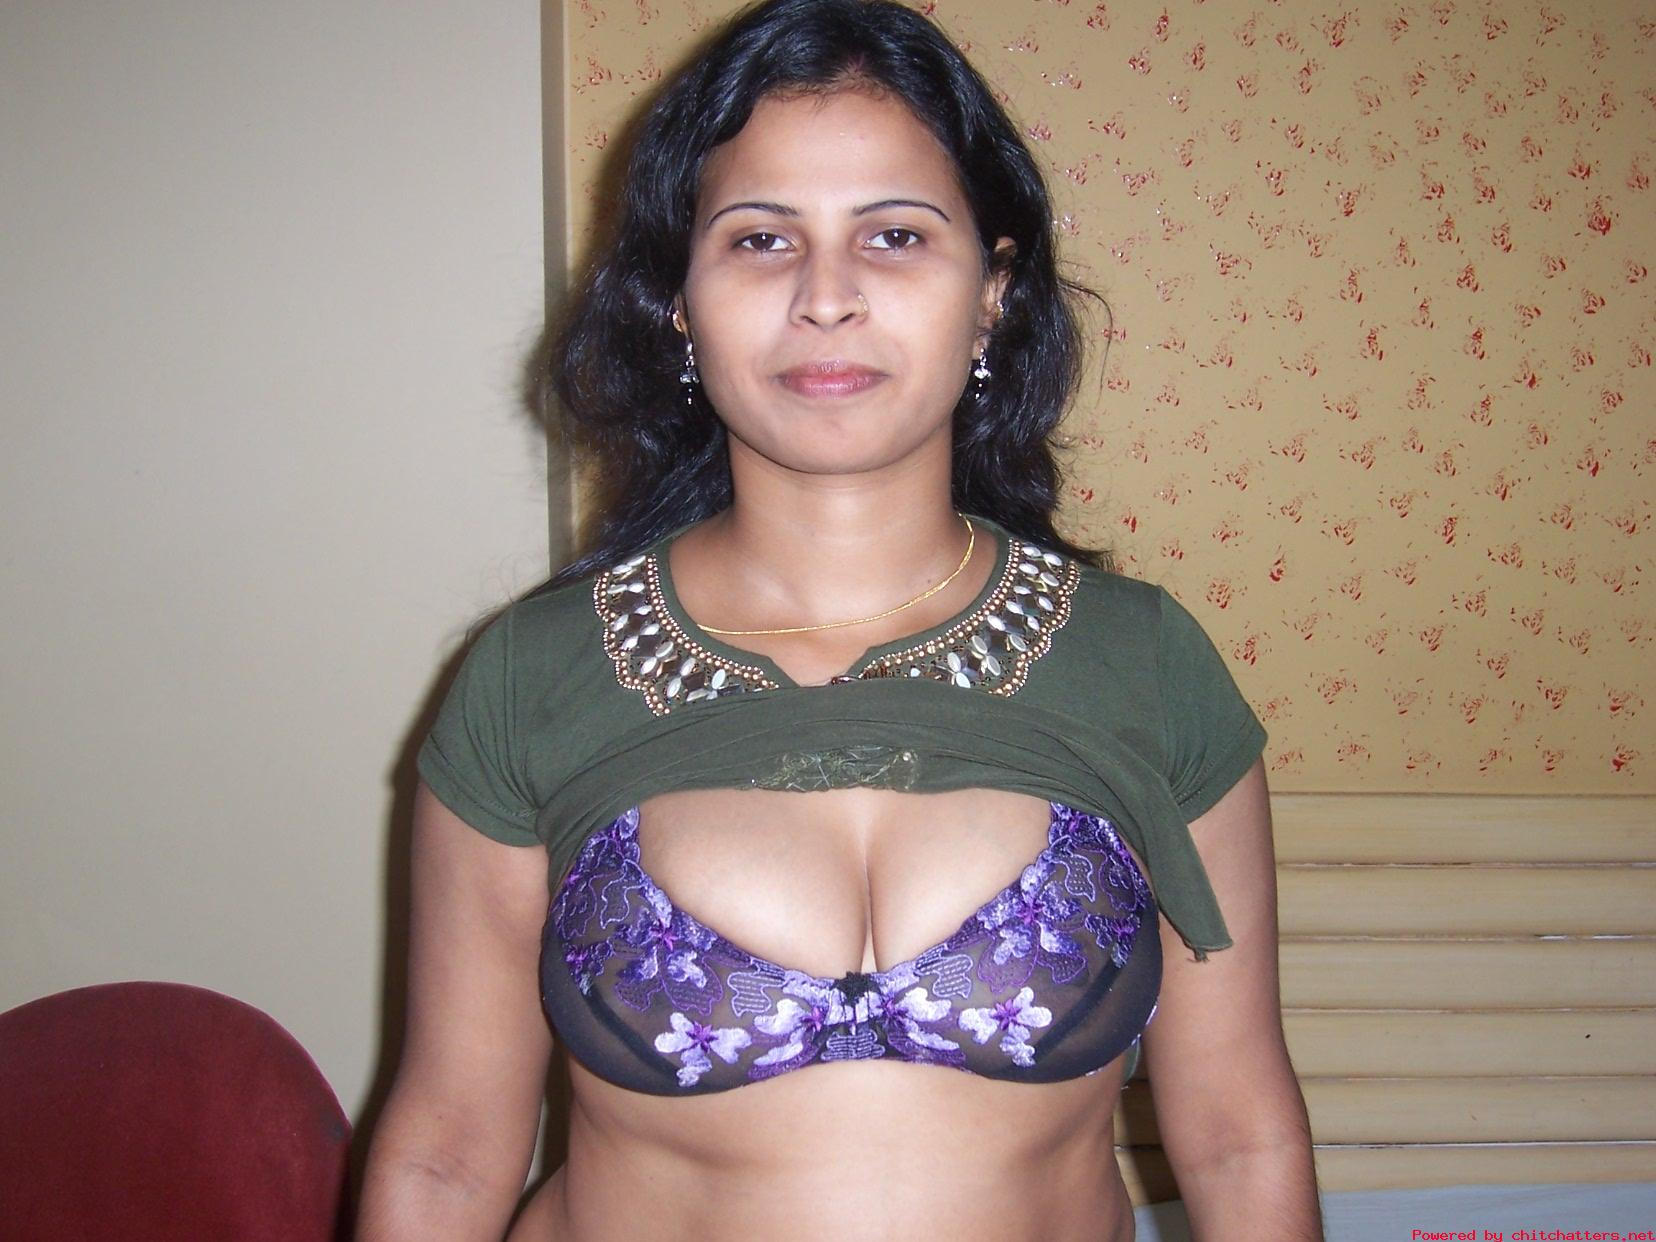 And naruto kerala auntys sexy pics butt gallerys hot